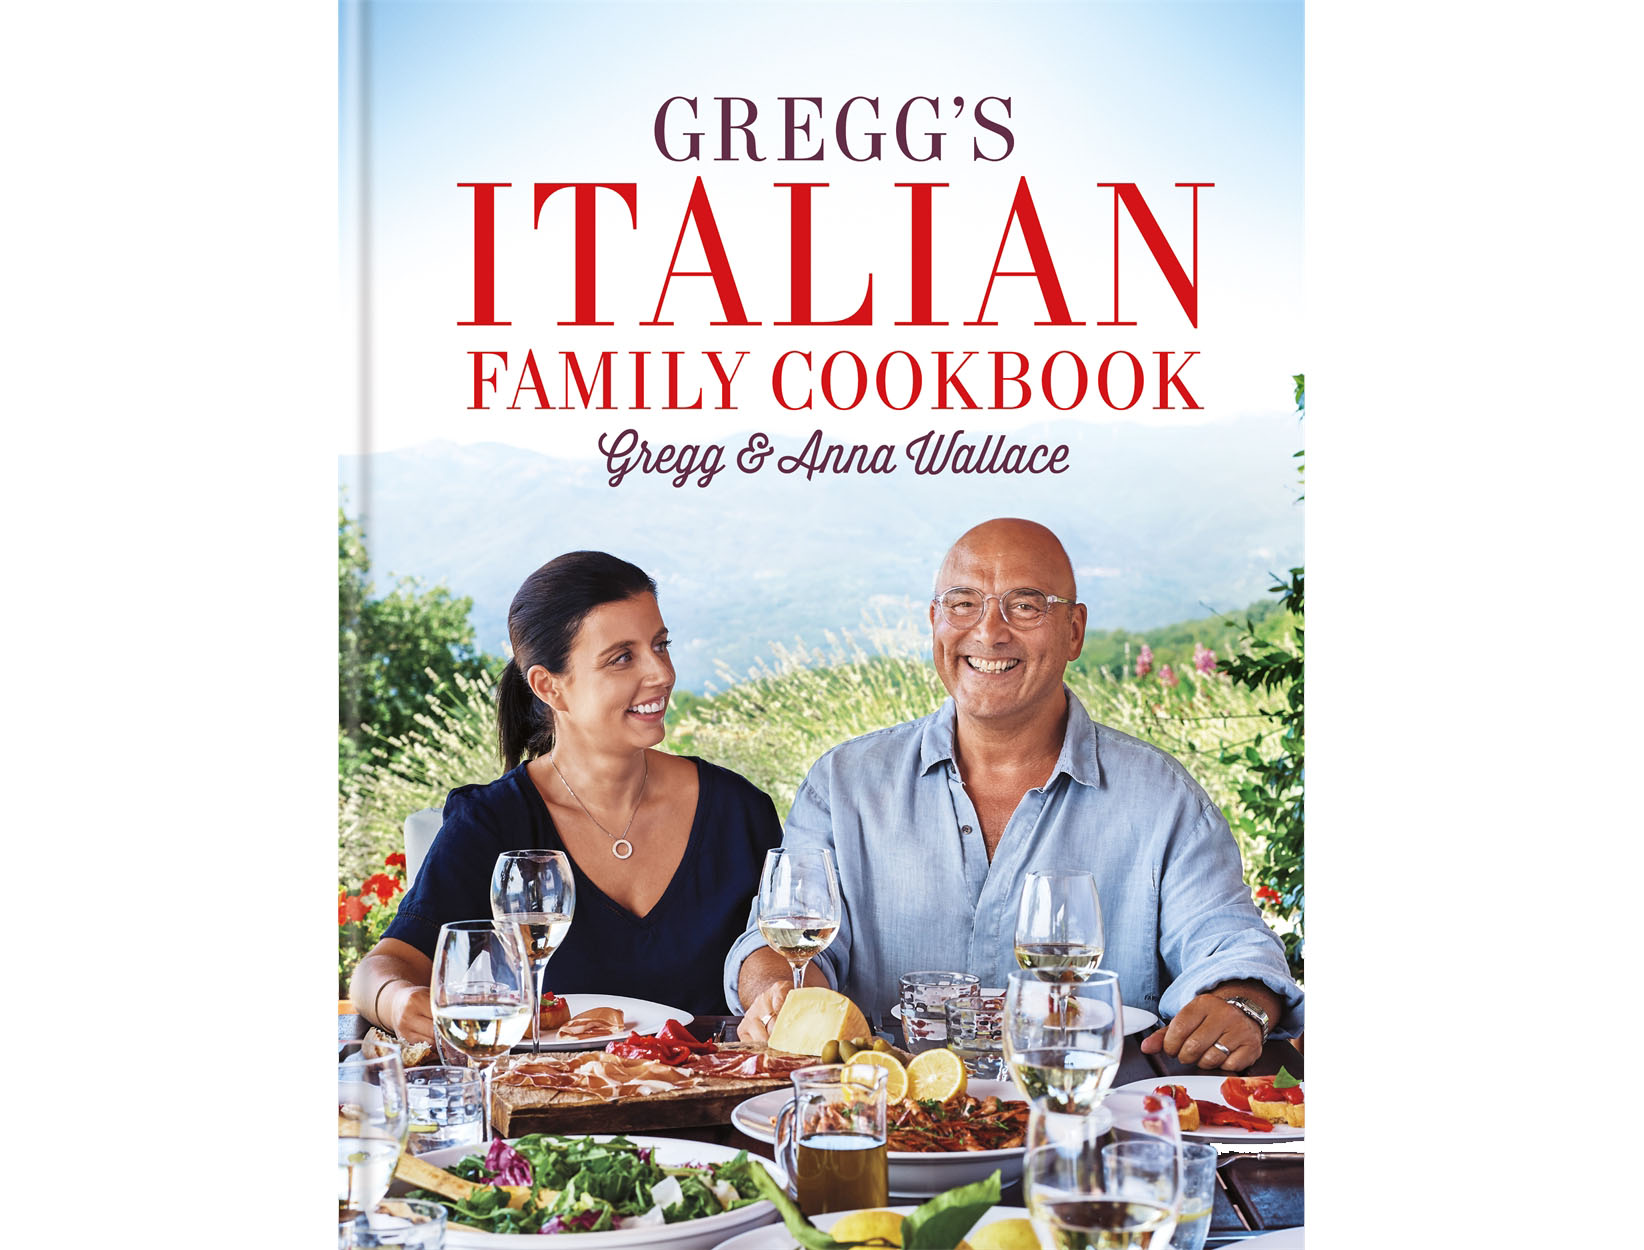 Book cover of Gregg's Italian family cookbook